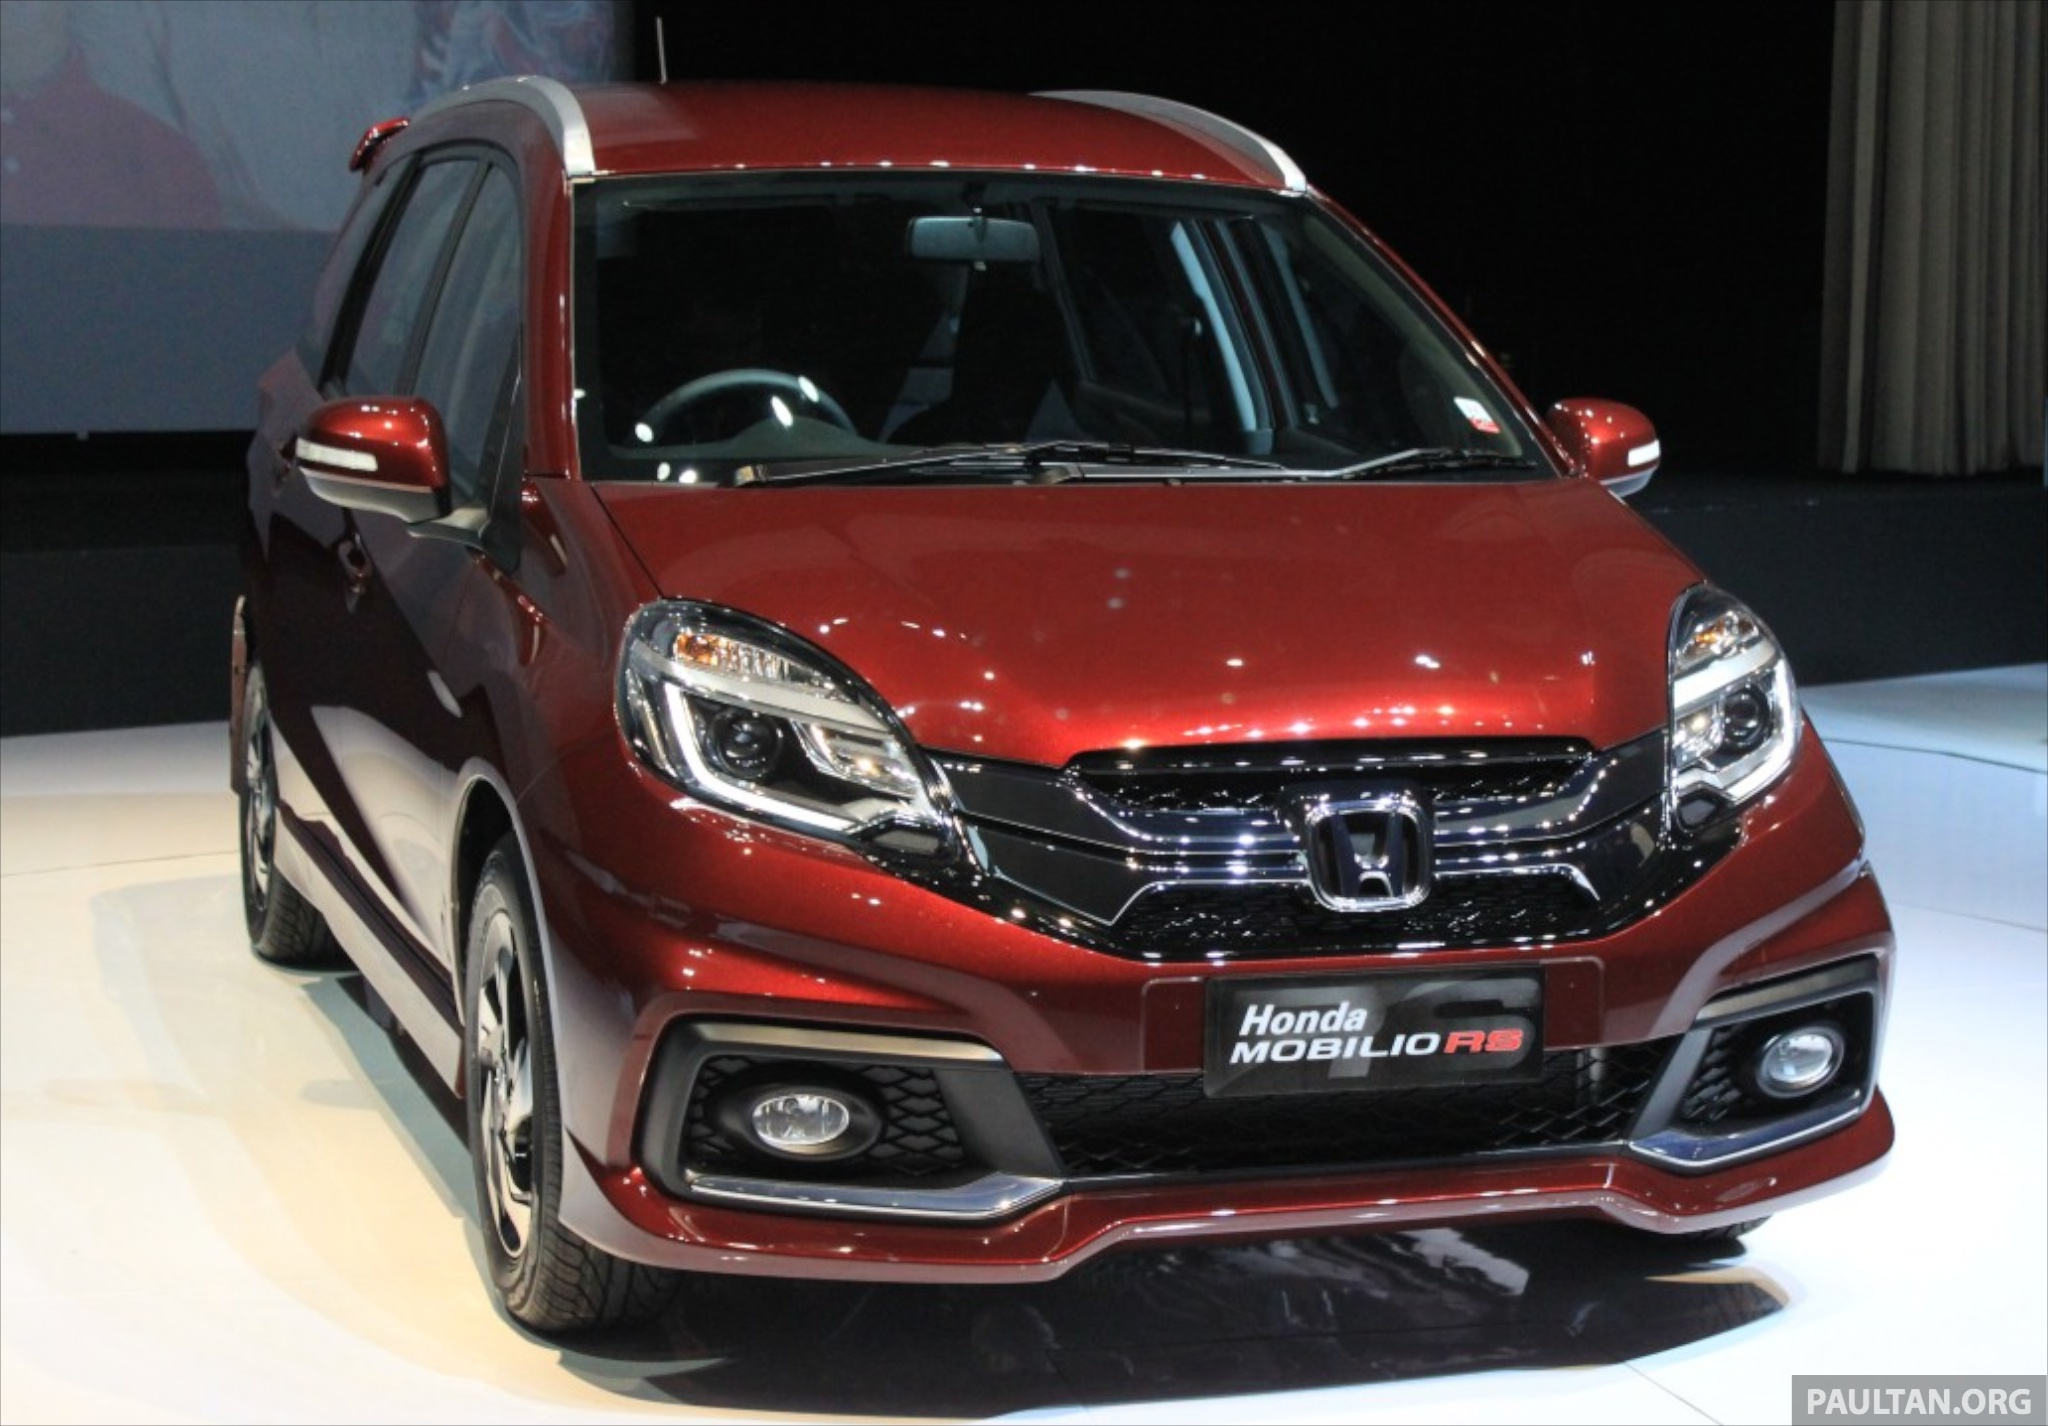 Honda Mobilio RS range-topper launched in Indonesia Image ...